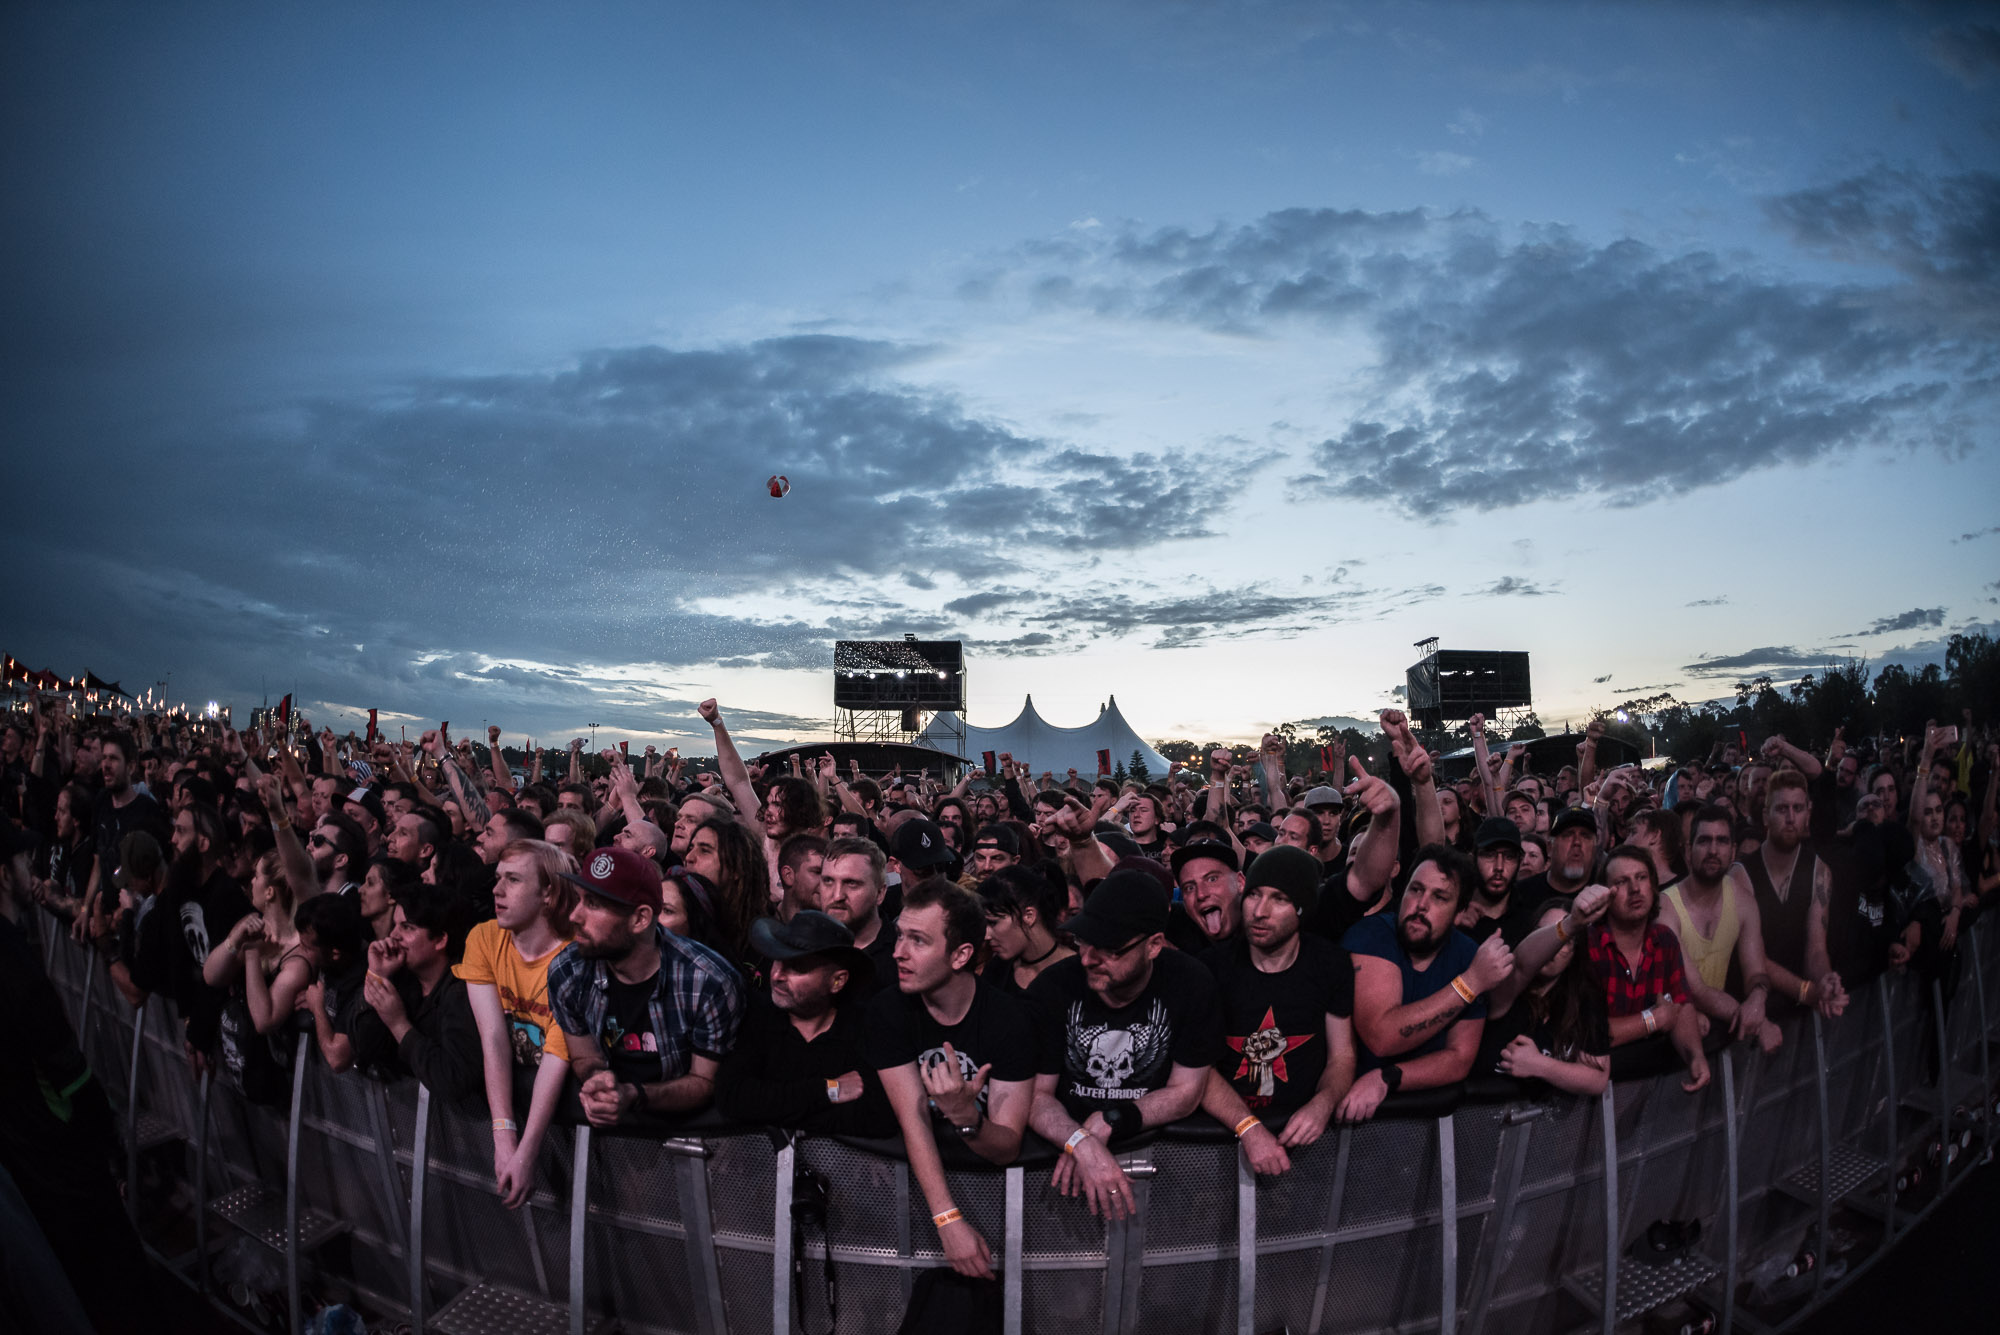 Download Festival Melbourne 2018 - Paul Tadday Photography - 051.jpg